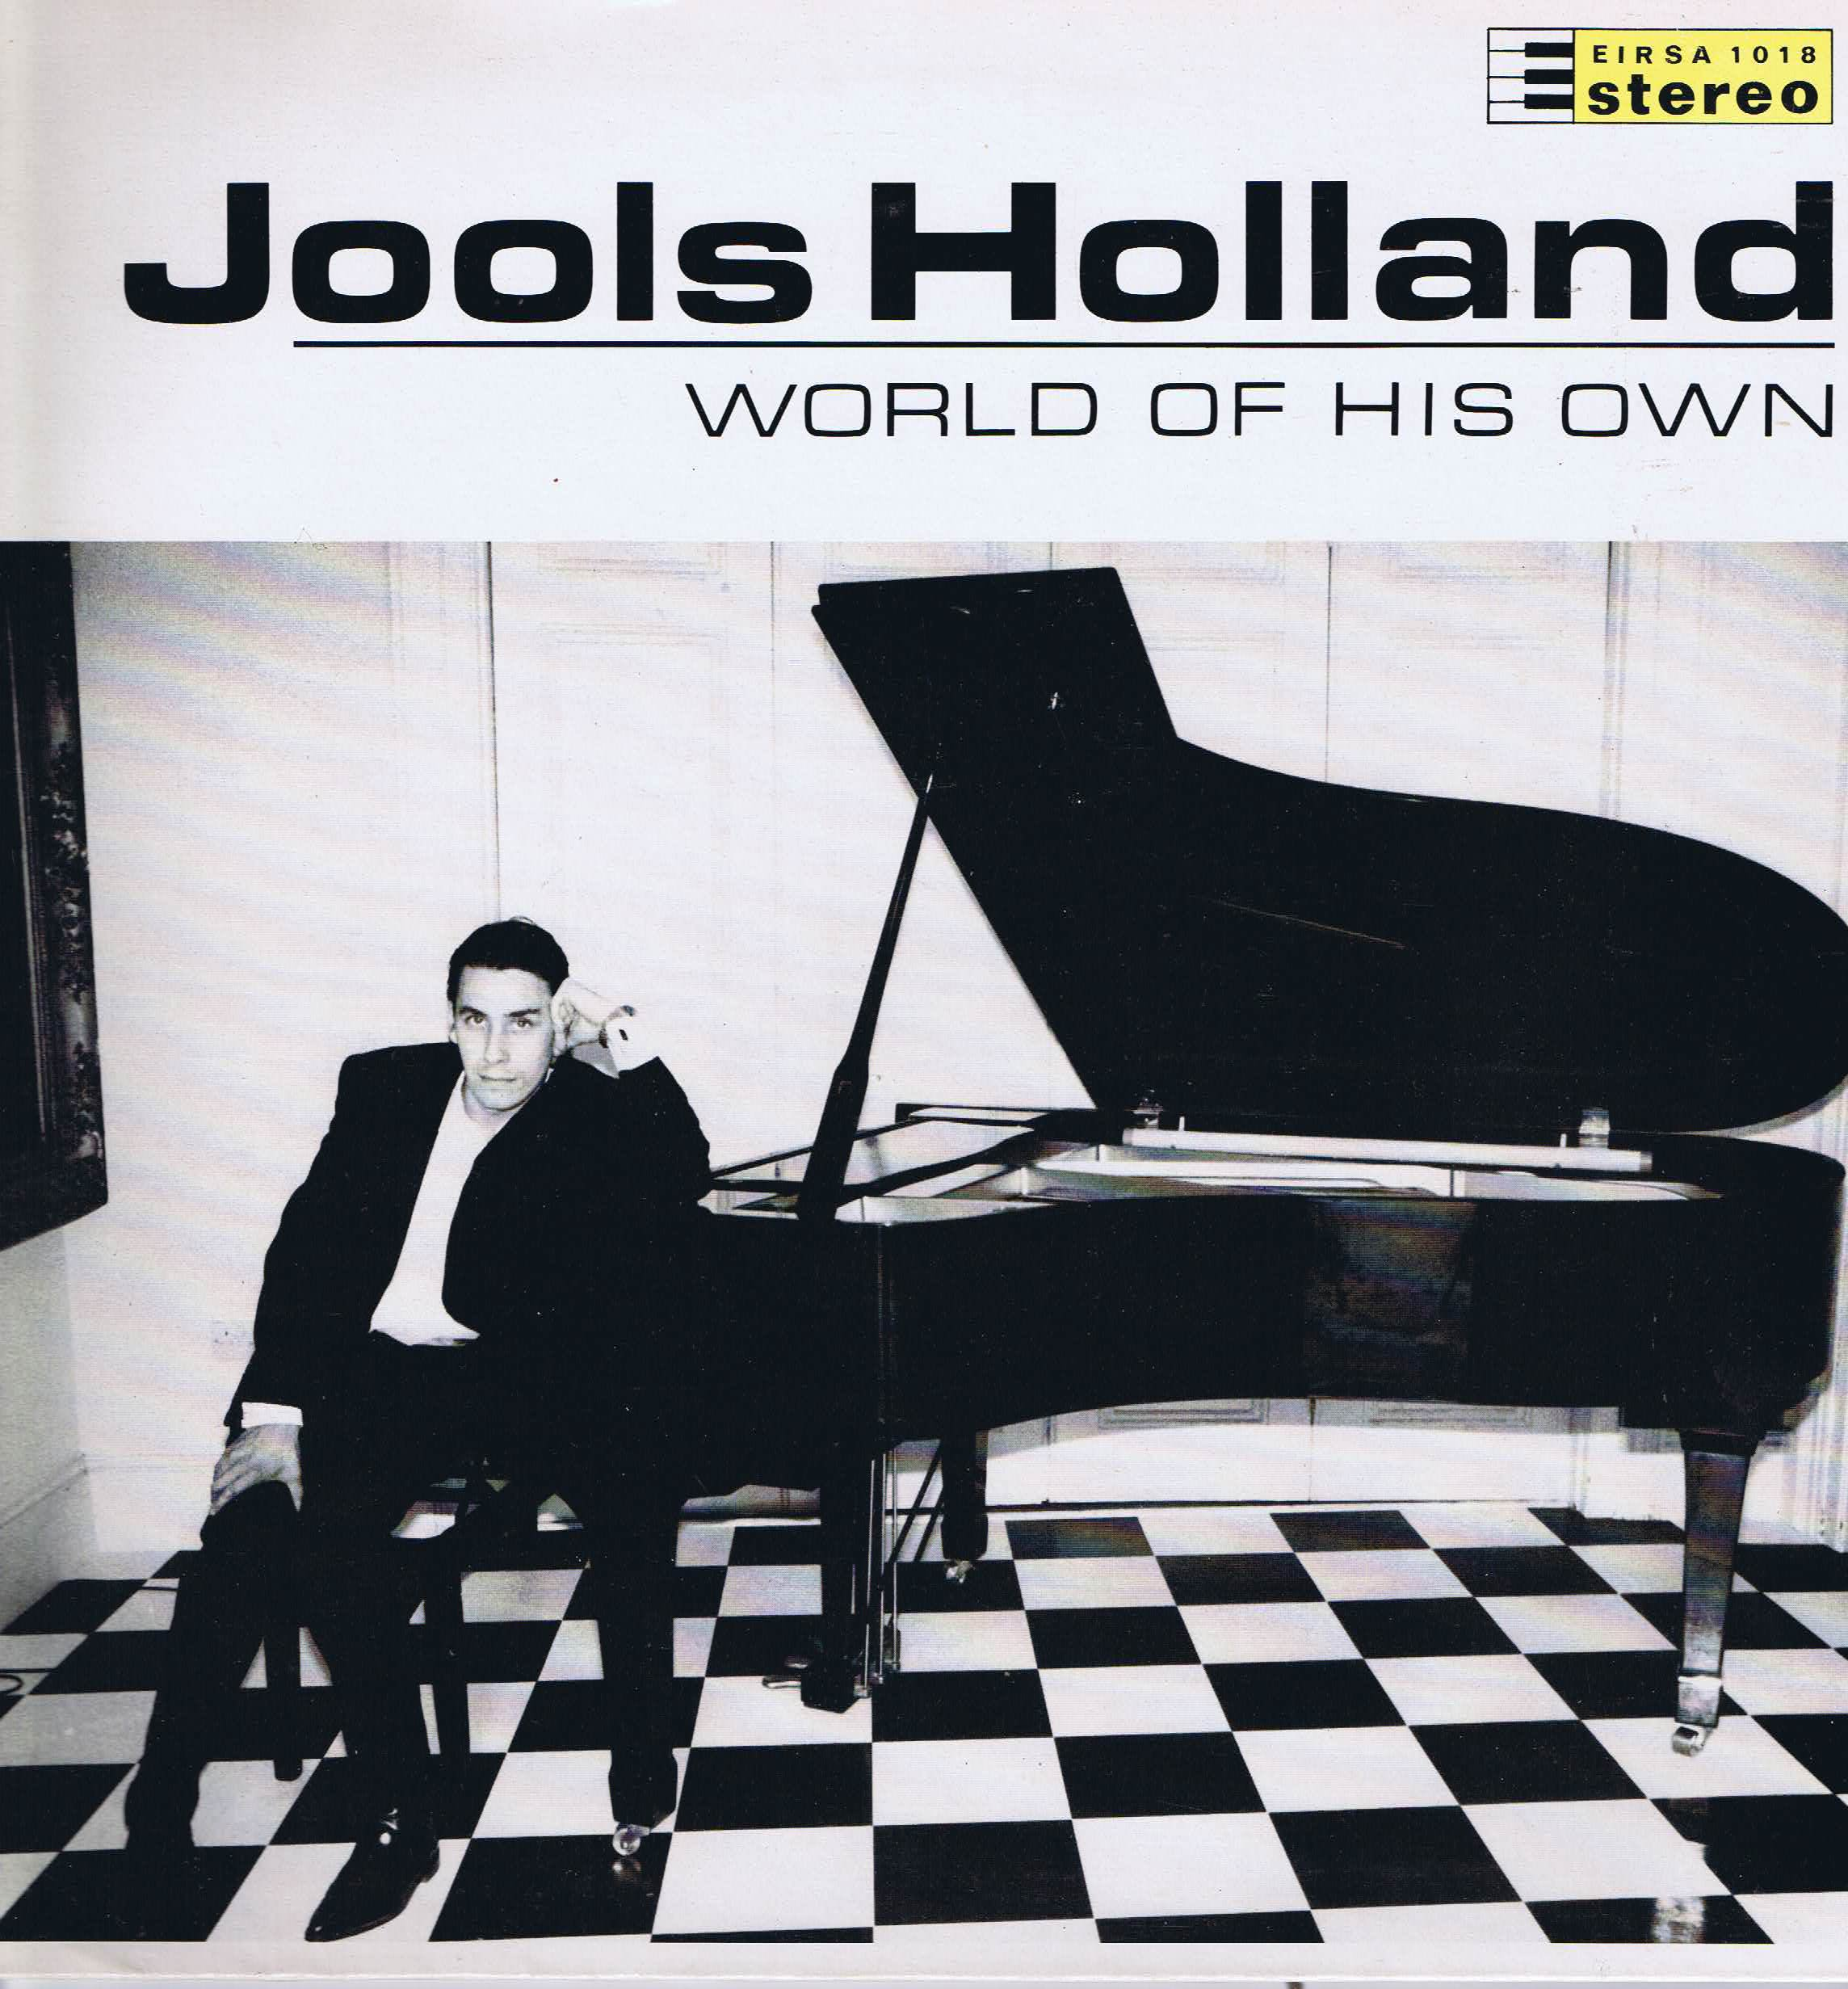 Jools Holland World Of His Own Eirsa 1018 Lp Record